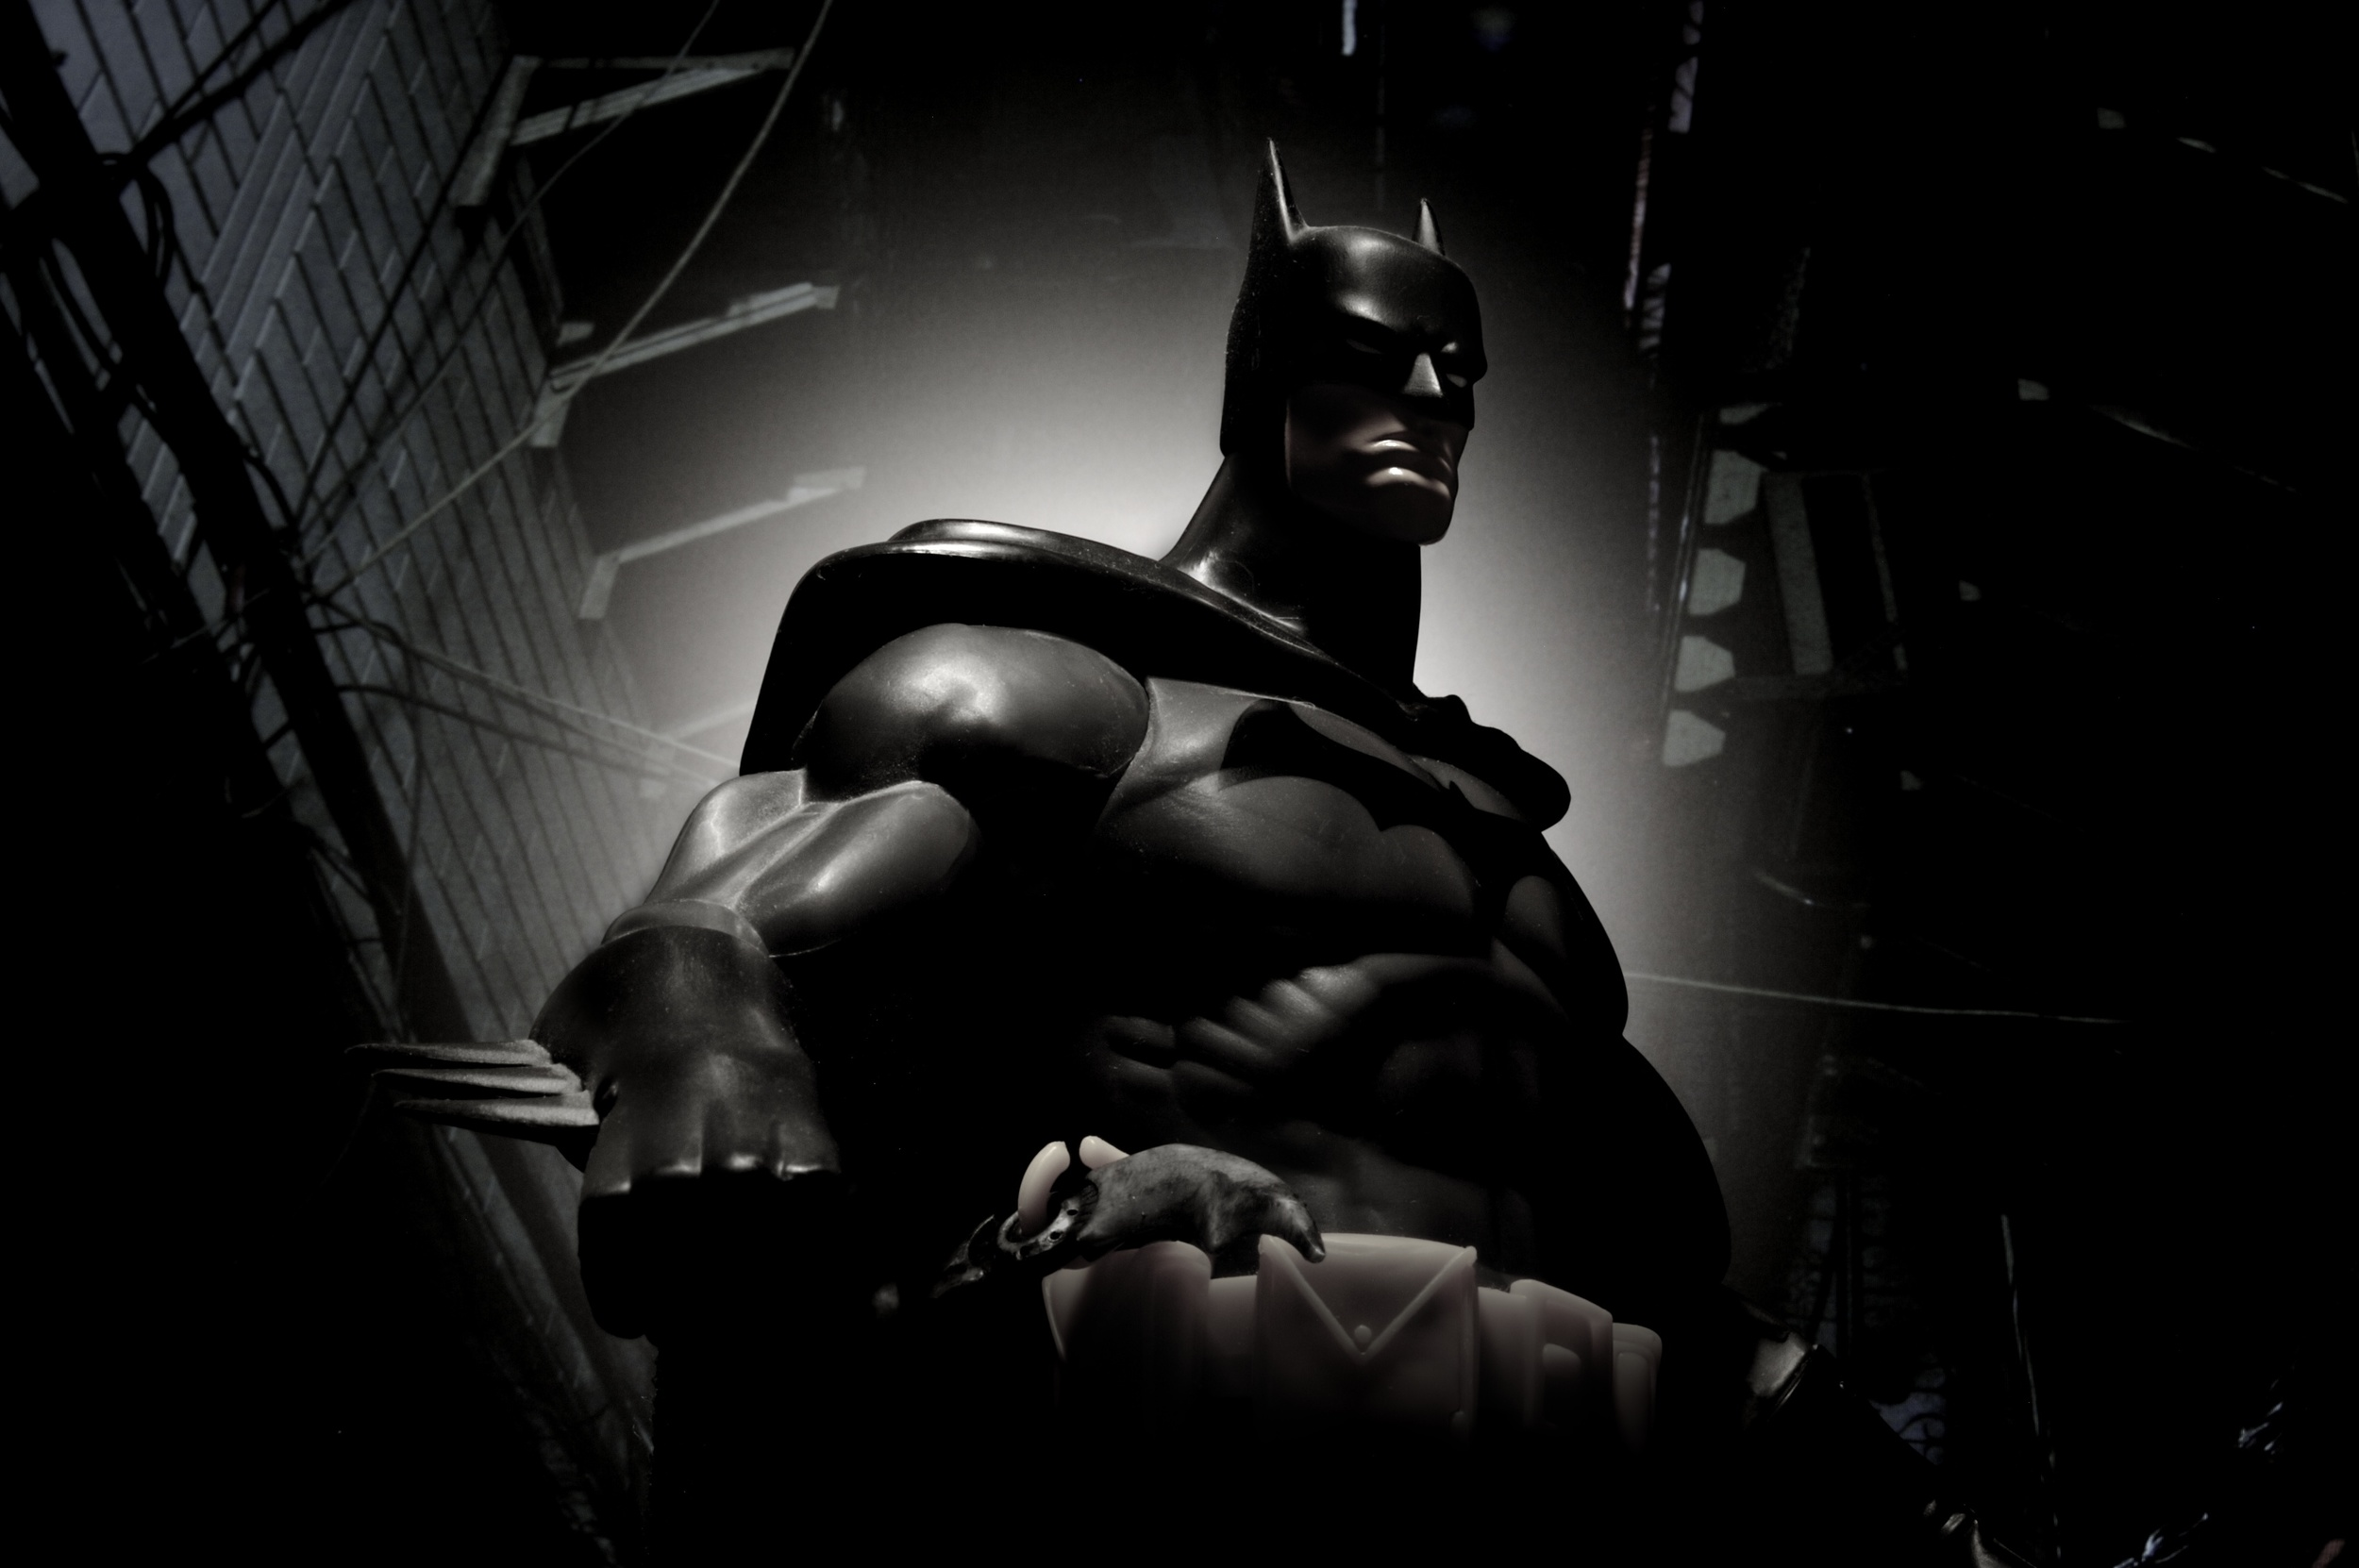 Batman-Spotlight.jpg